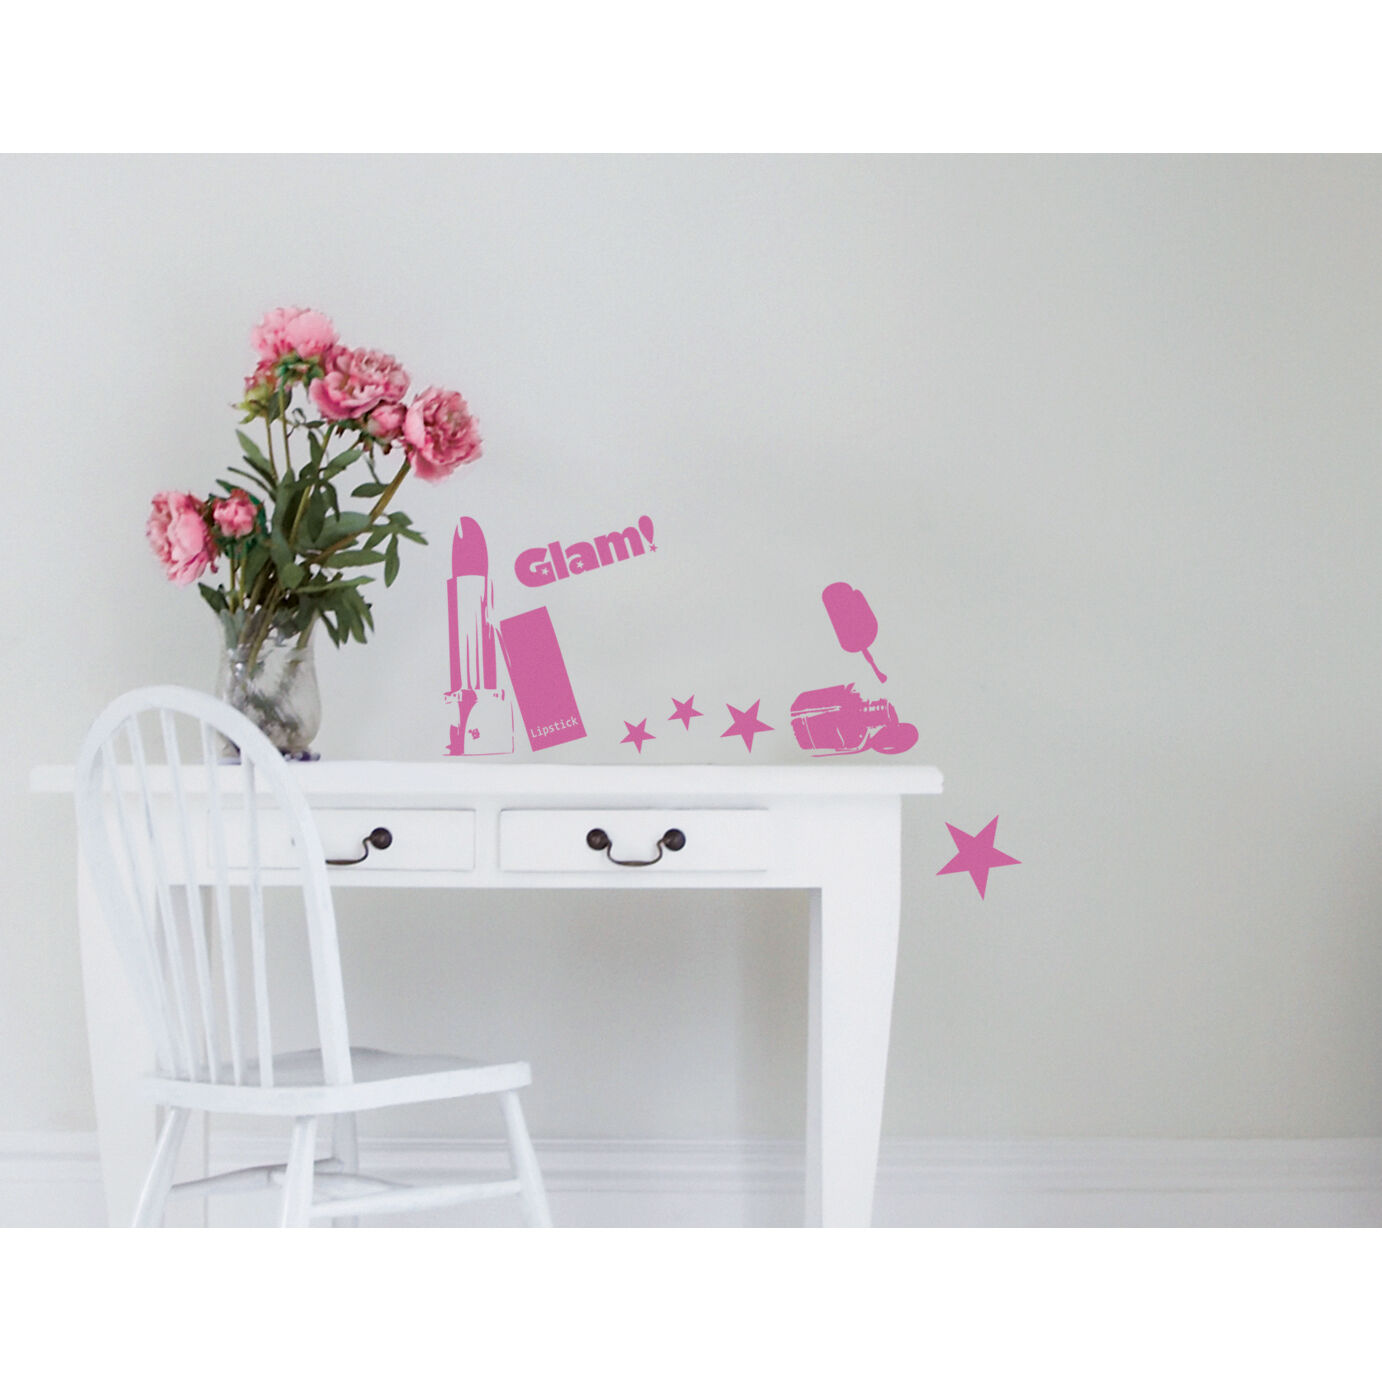 Incredible Teen Bedroom Wall Stickers for Girls 1382 x 1382 · 111 kB · jpeg